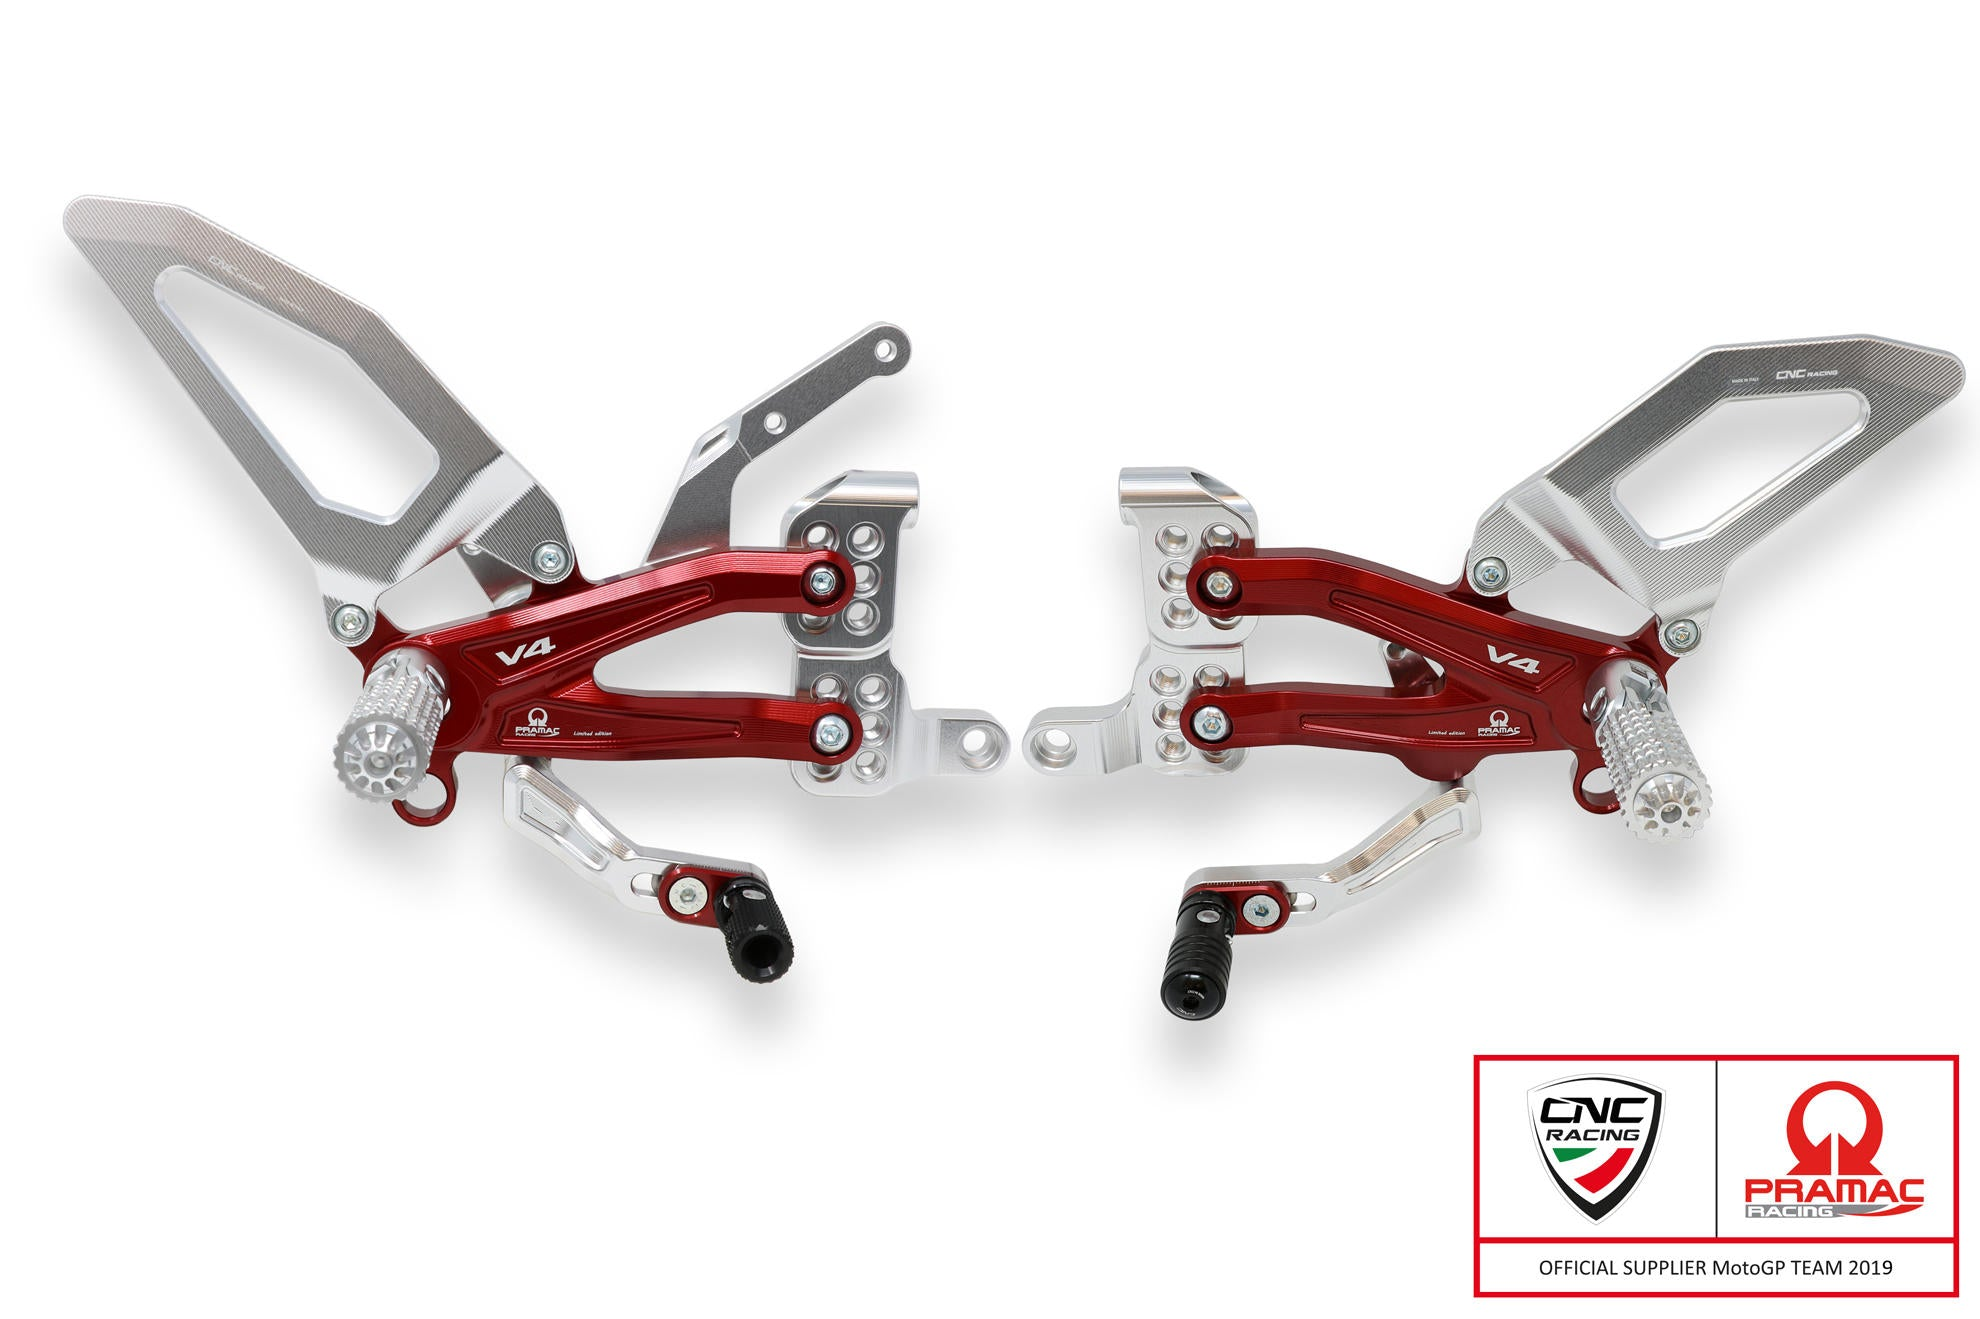 Panigale V4 - Adjustable Rearsets, Rearsets, CNC Racing - Averys Motorcycles